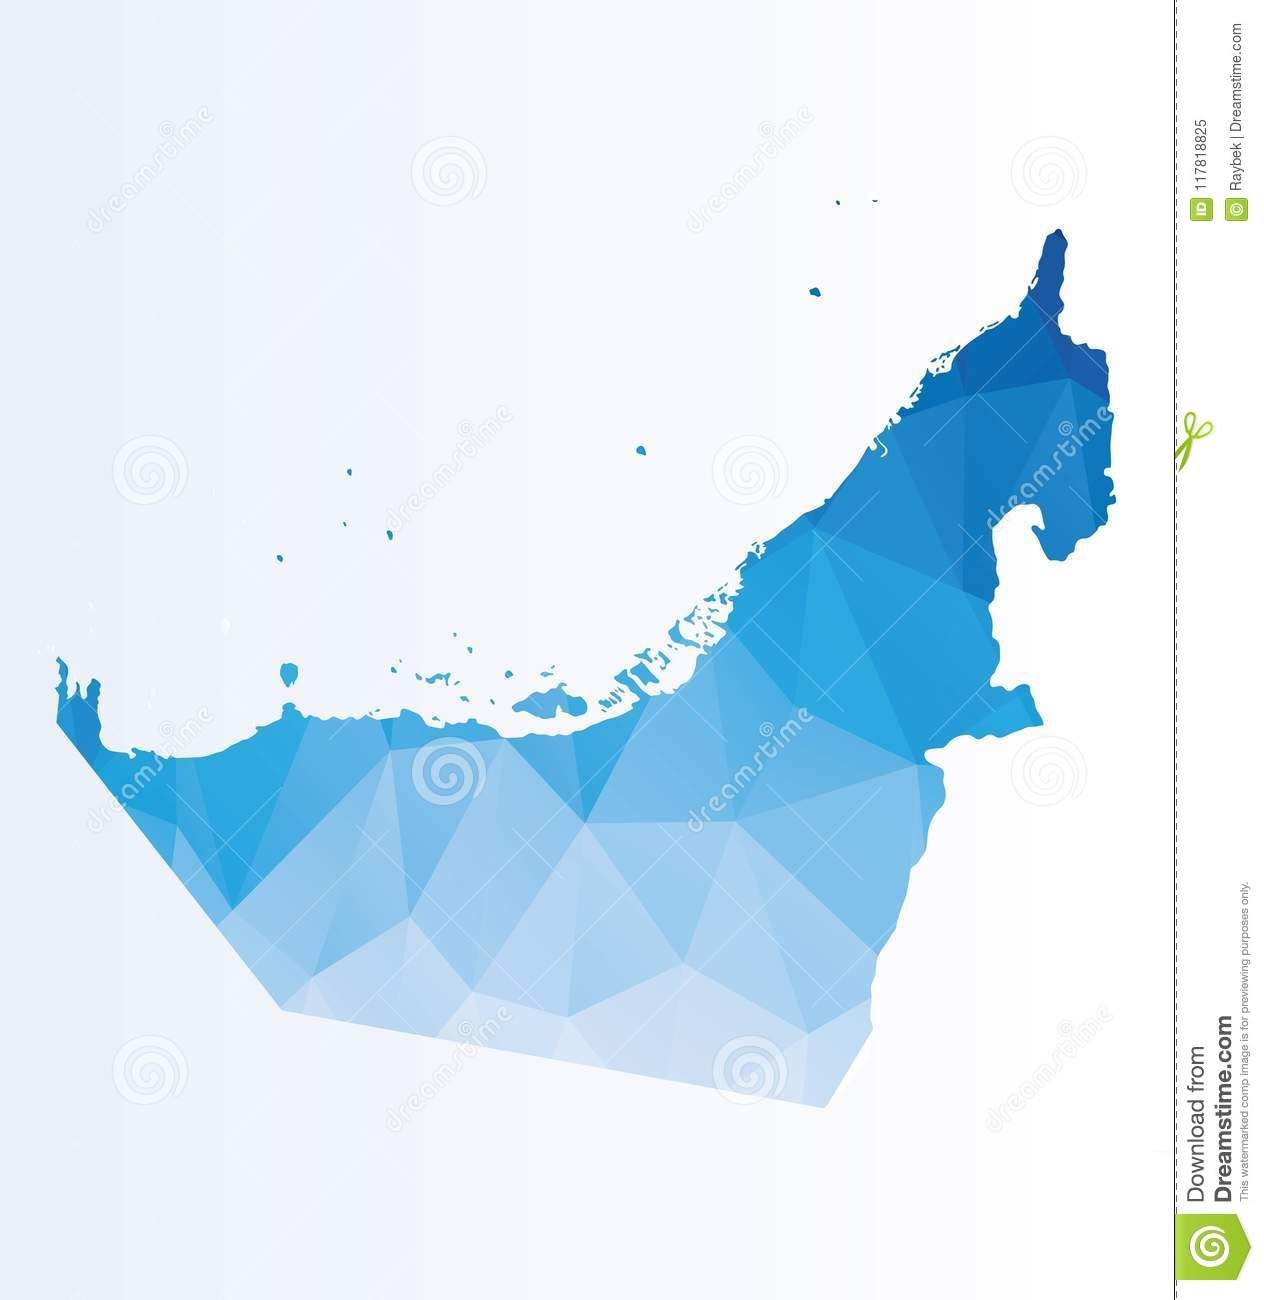 Polygonal map of UAE stock illustration. Illustration of triangle ...